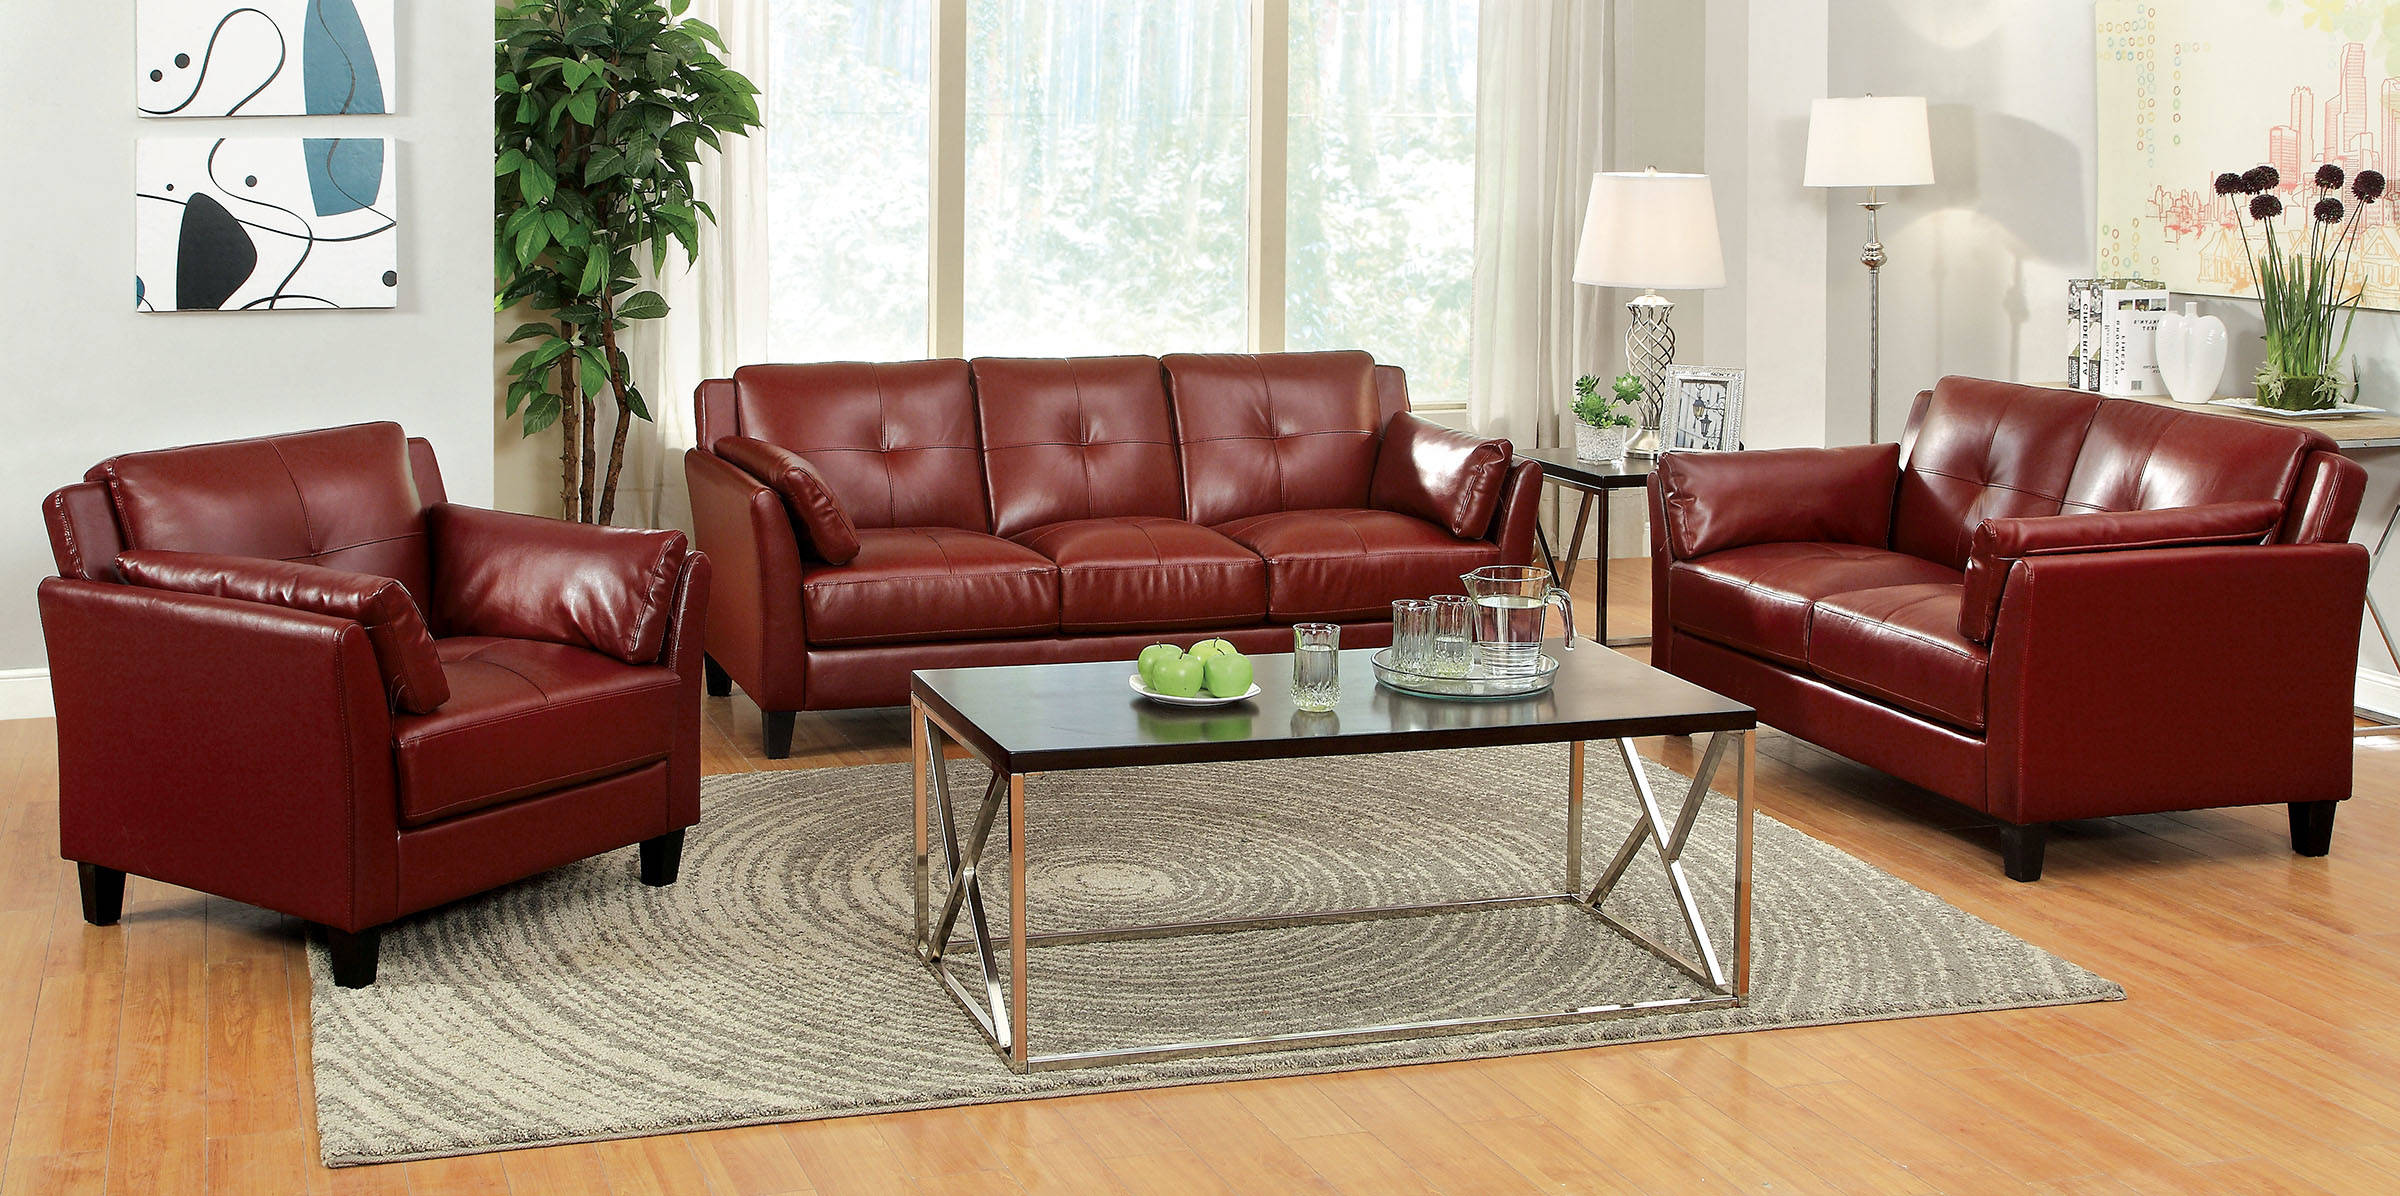 Furniture of America Pierre Red 2pc Living Room Set